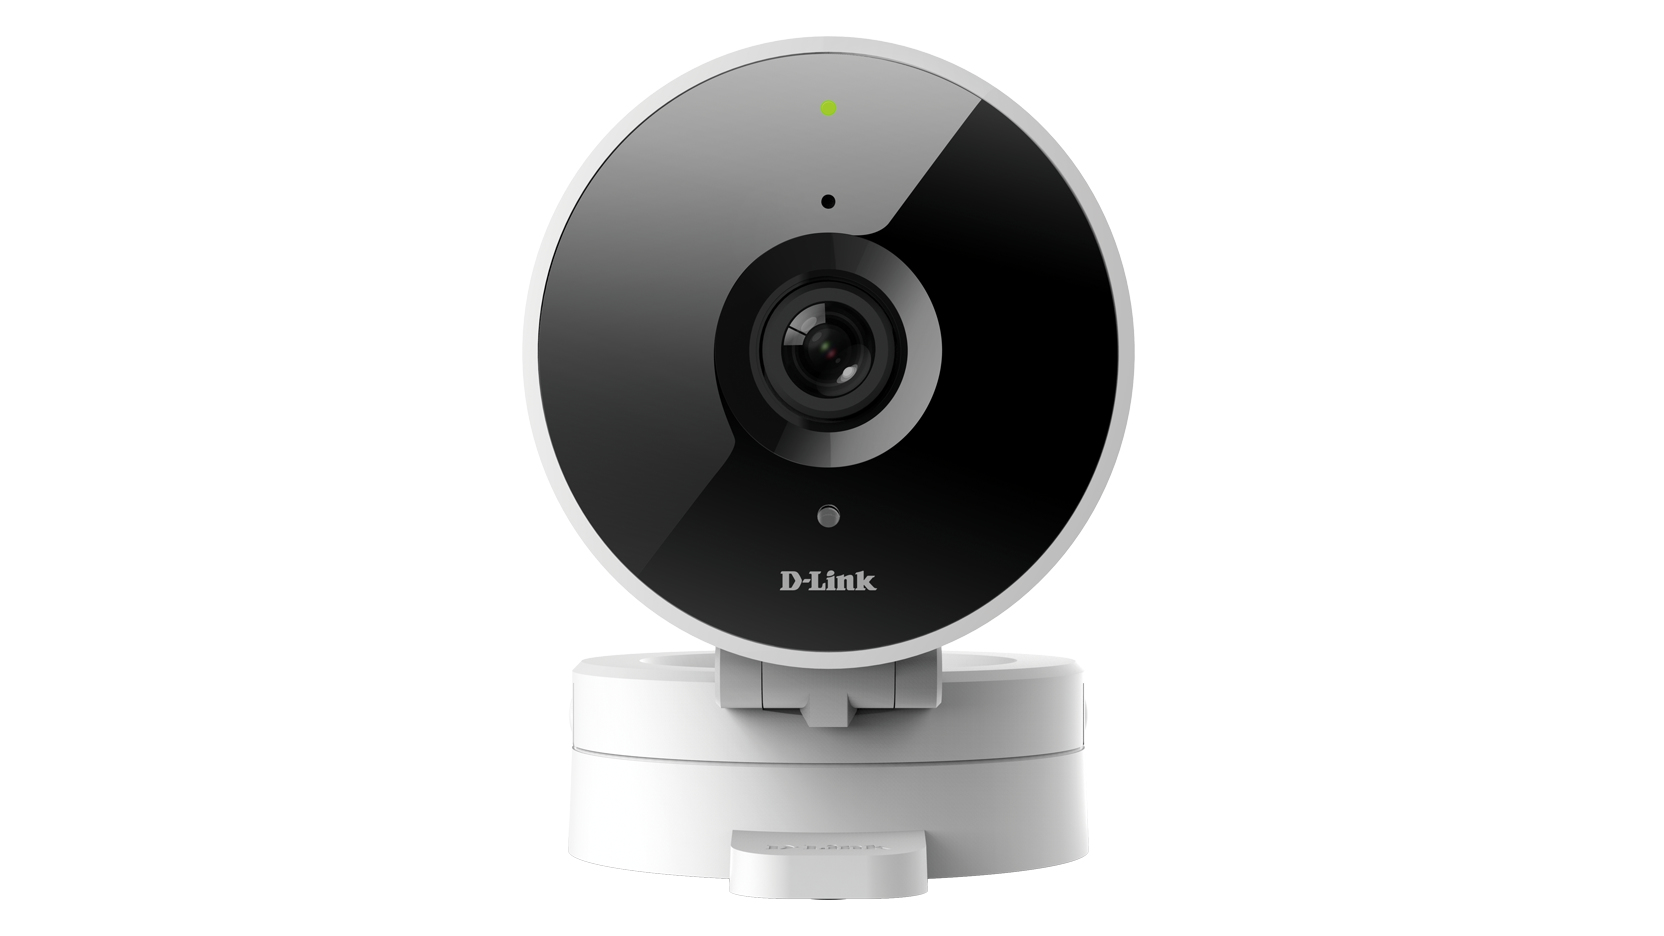 D-LINK DCS-8010LH IP SECURITY CAMERA INDOOR WHITE 1280 X 720PIXELS